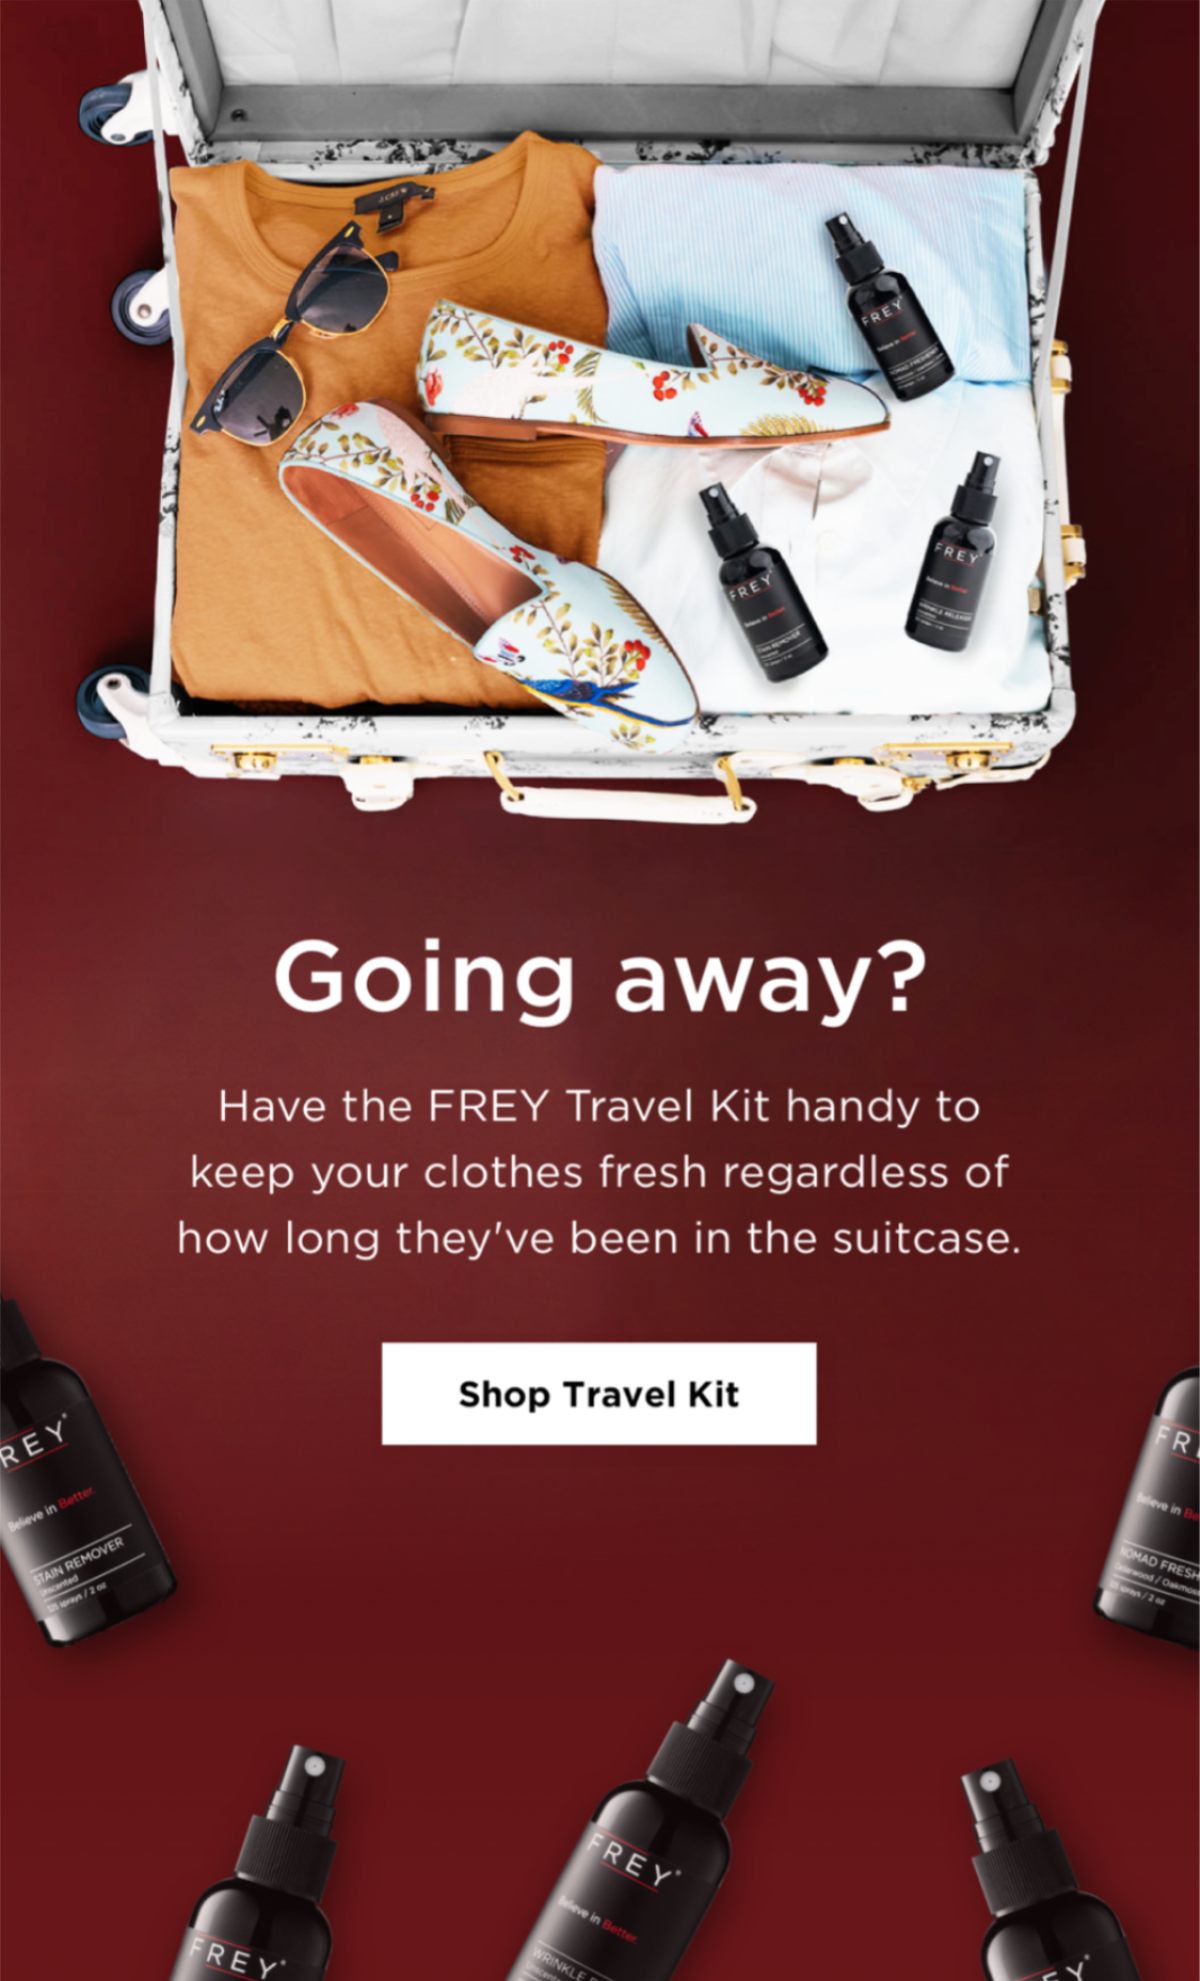 Going away? Have the FREY Travel Kit handy to keep your clothes fresh regardless of how long they've been in the suitcase. SHOP TRAVEL KIT